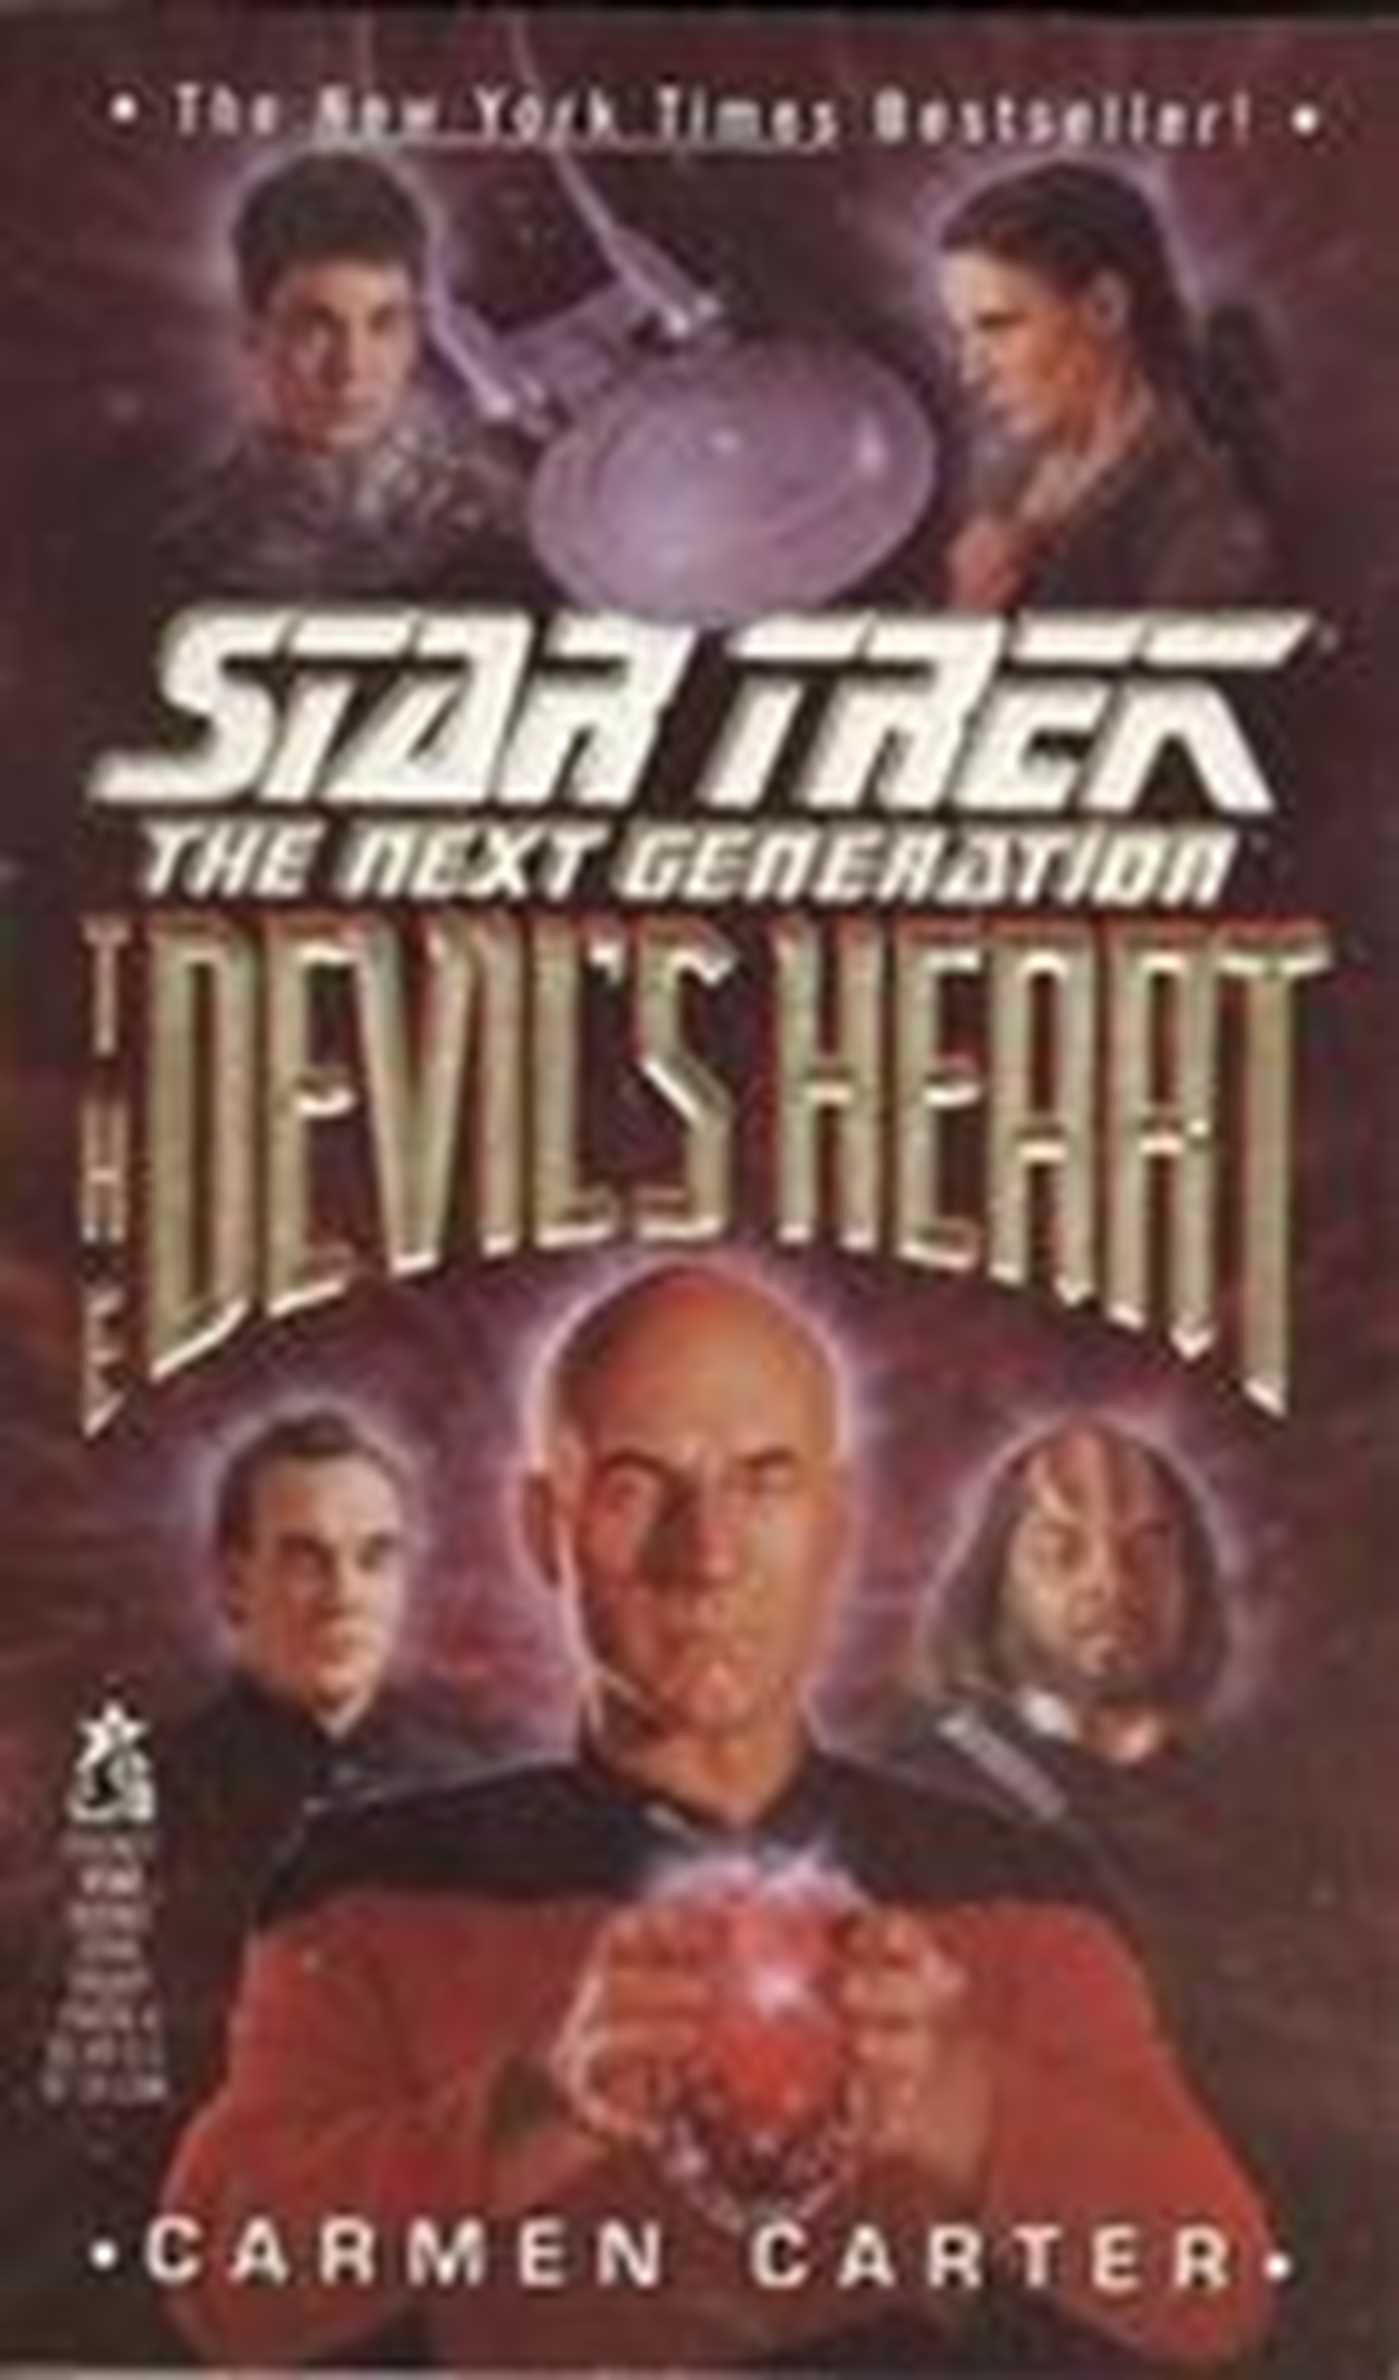 Devils-heart-9780743420631_hr